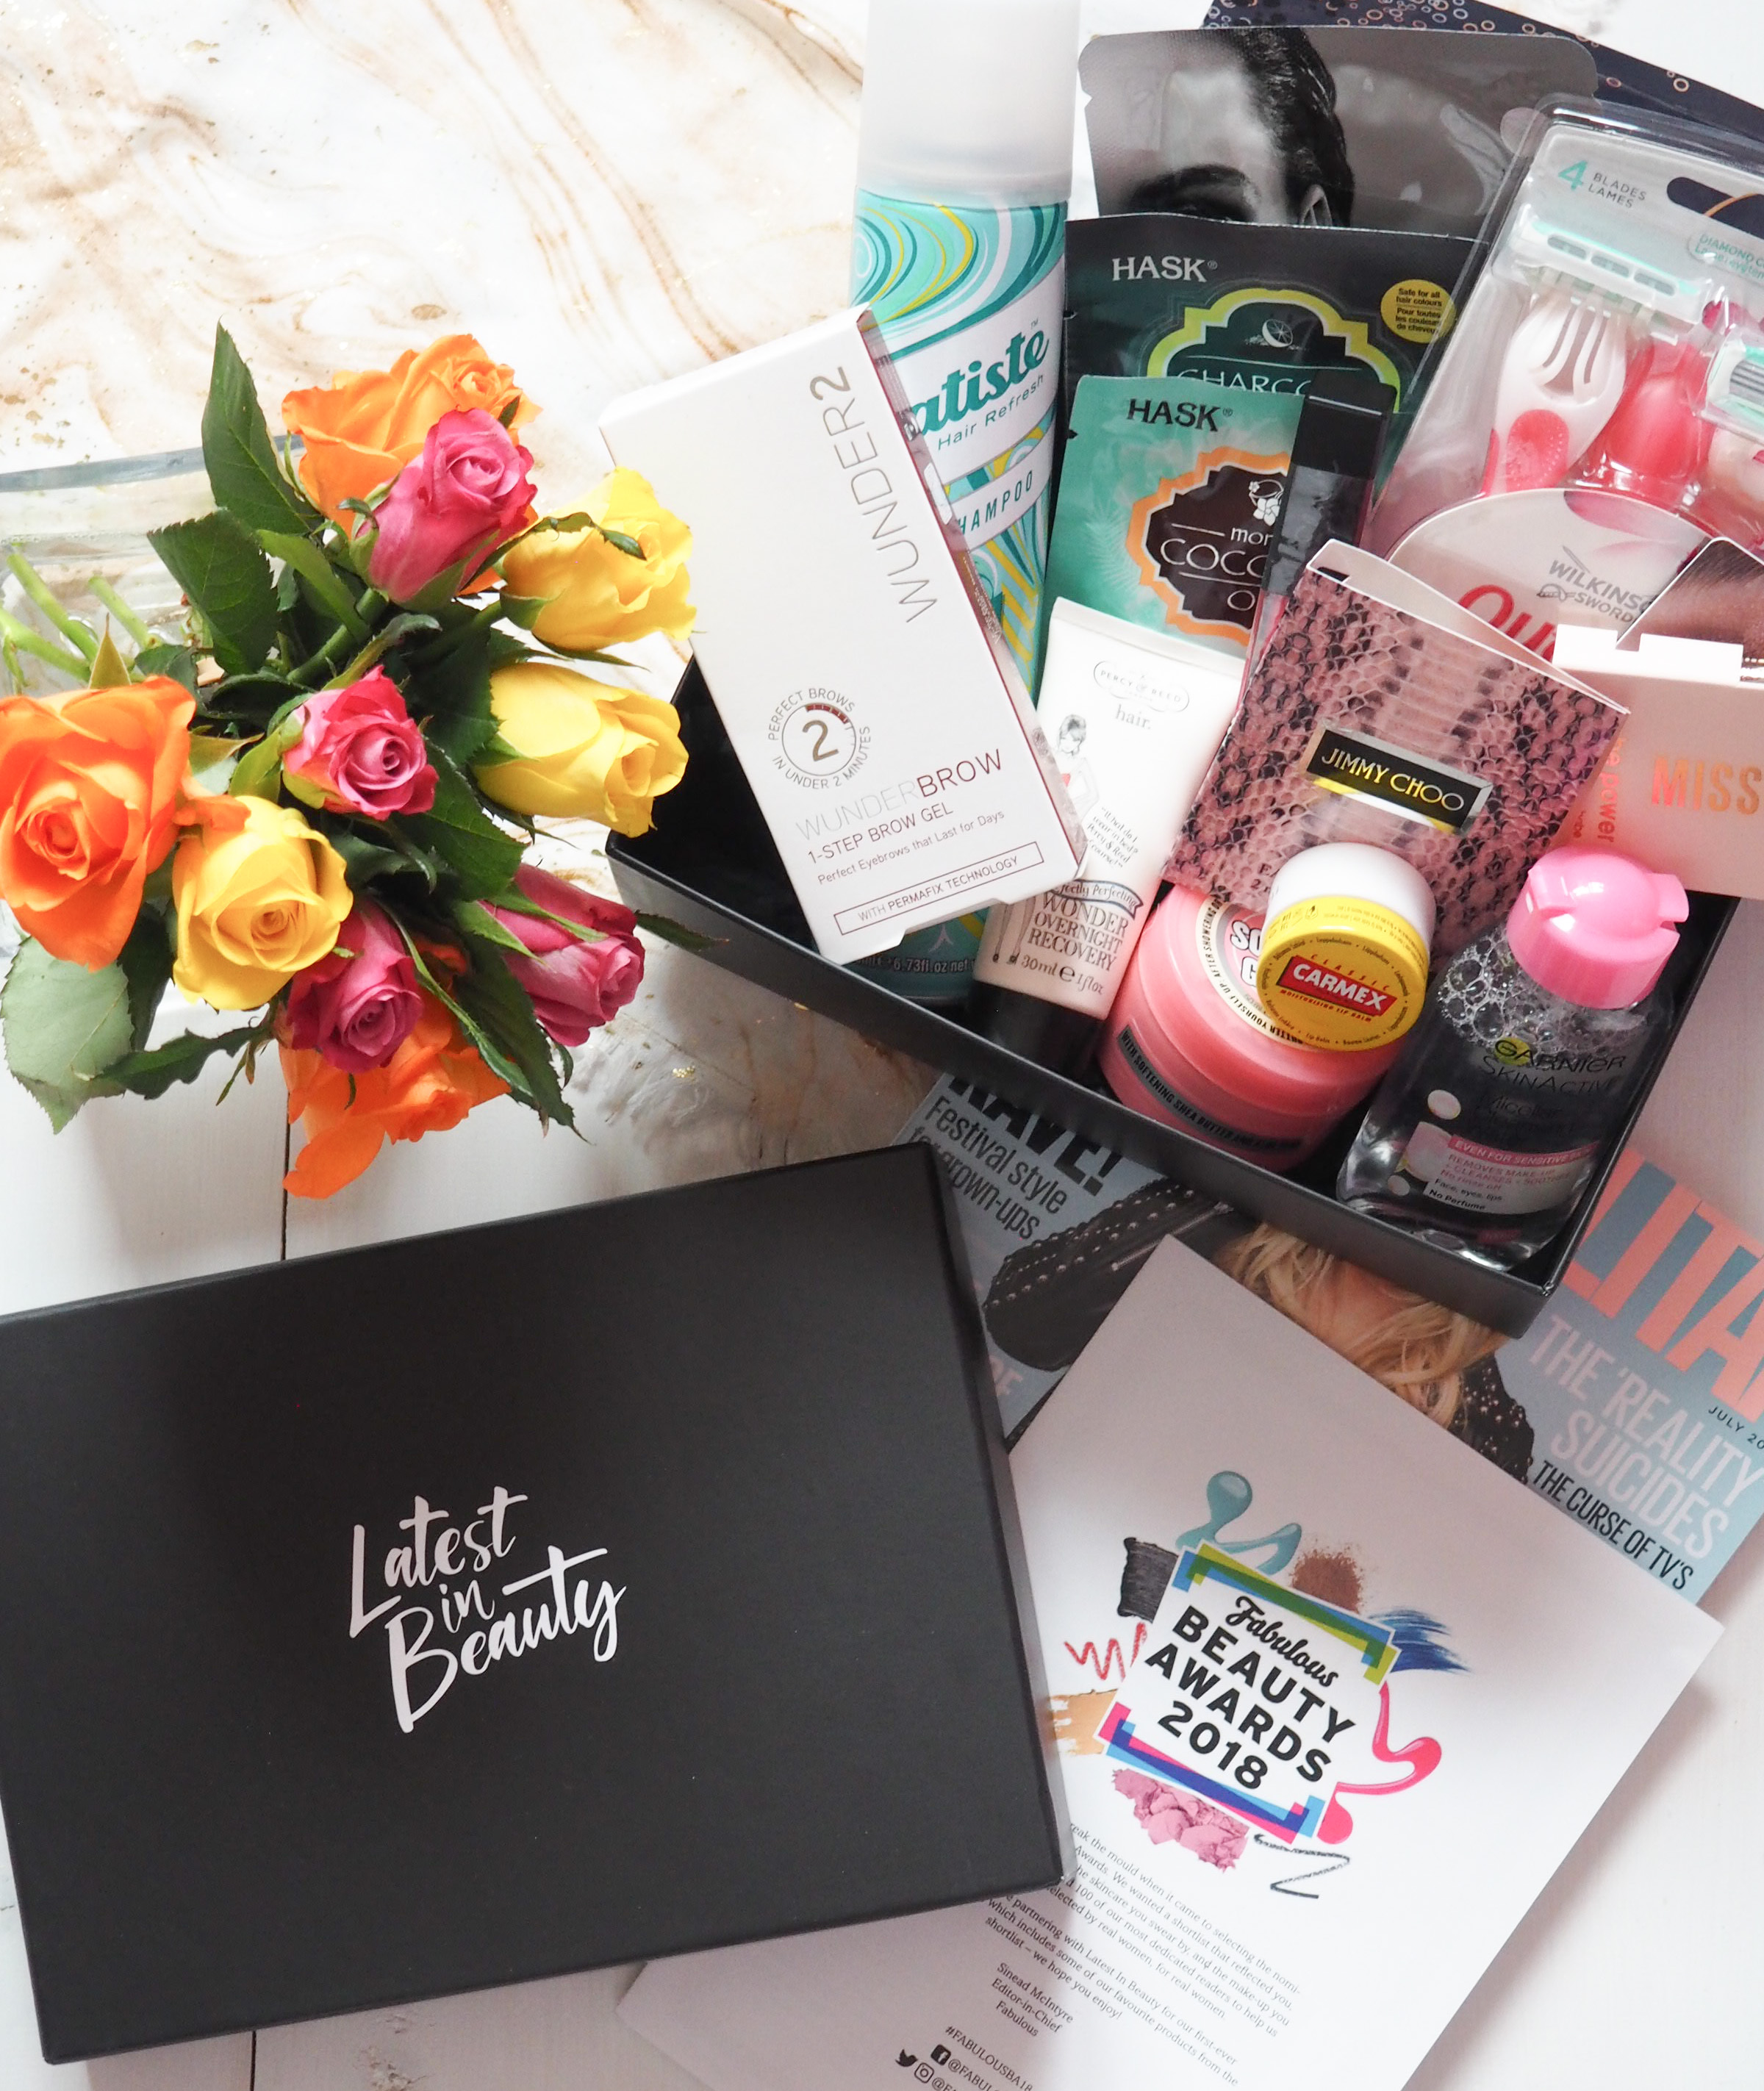 Fabulous Beauty Awards 2018 Beauty Box from Latest in Beauty.jpg